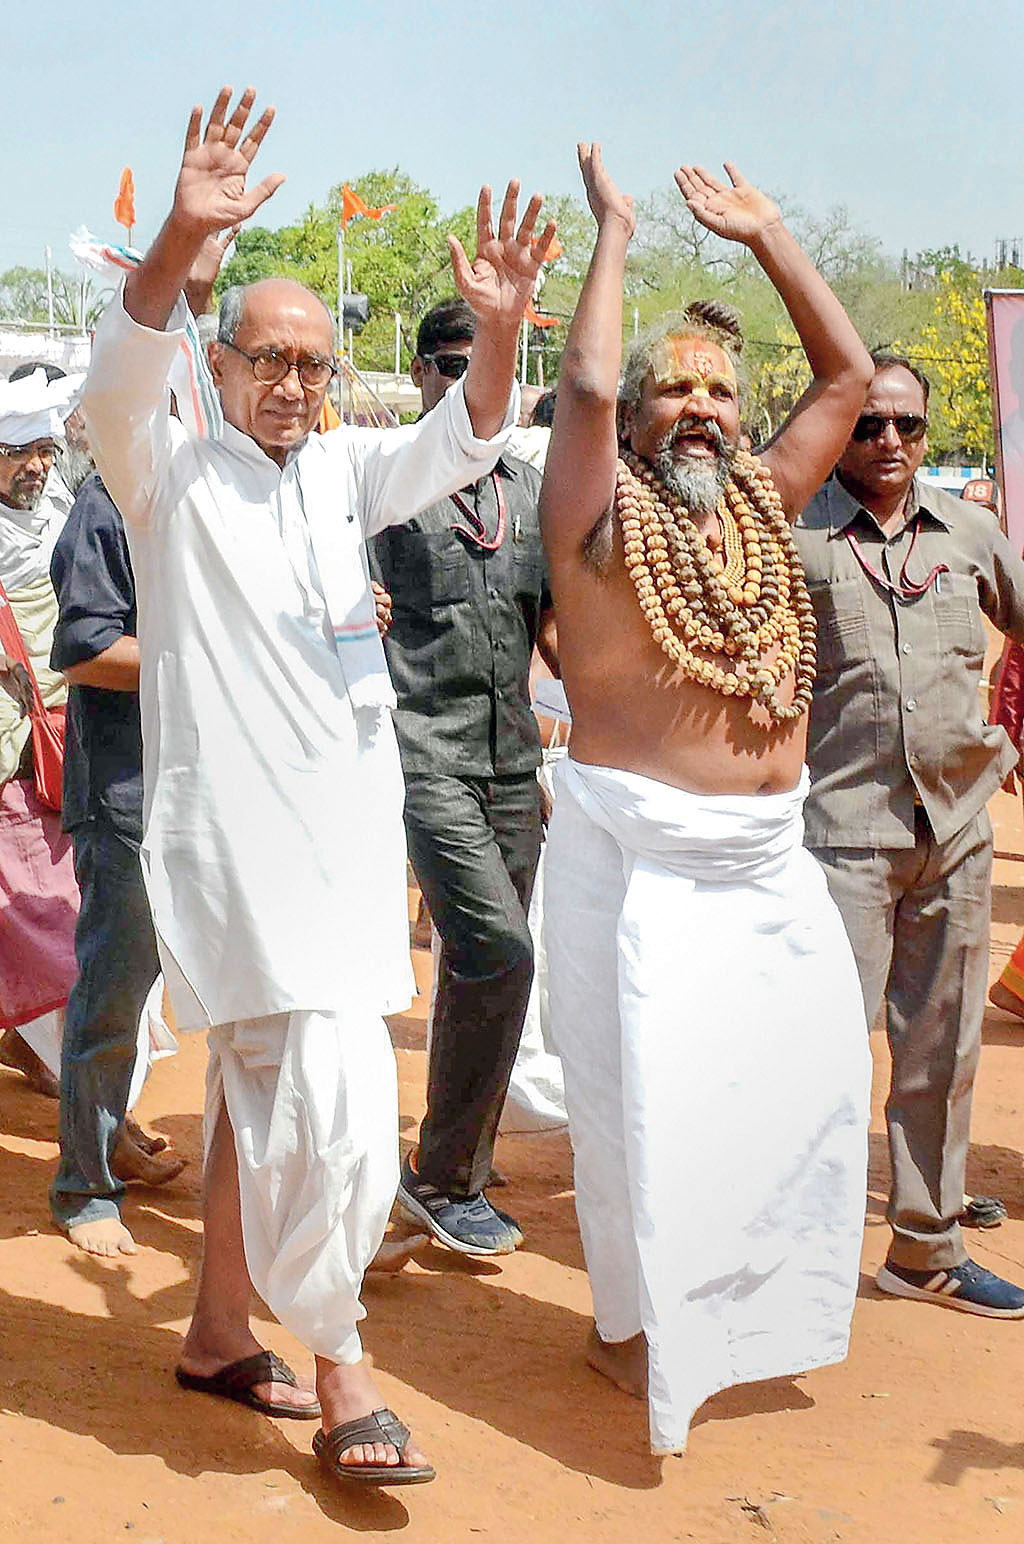 Digvijay Singh along with Computer Baba in Bhopal on May 07, 2019. The Congress candidate for the Bhopal Lok Sabha seat proclaimed that he had no less than seven temples in his own home